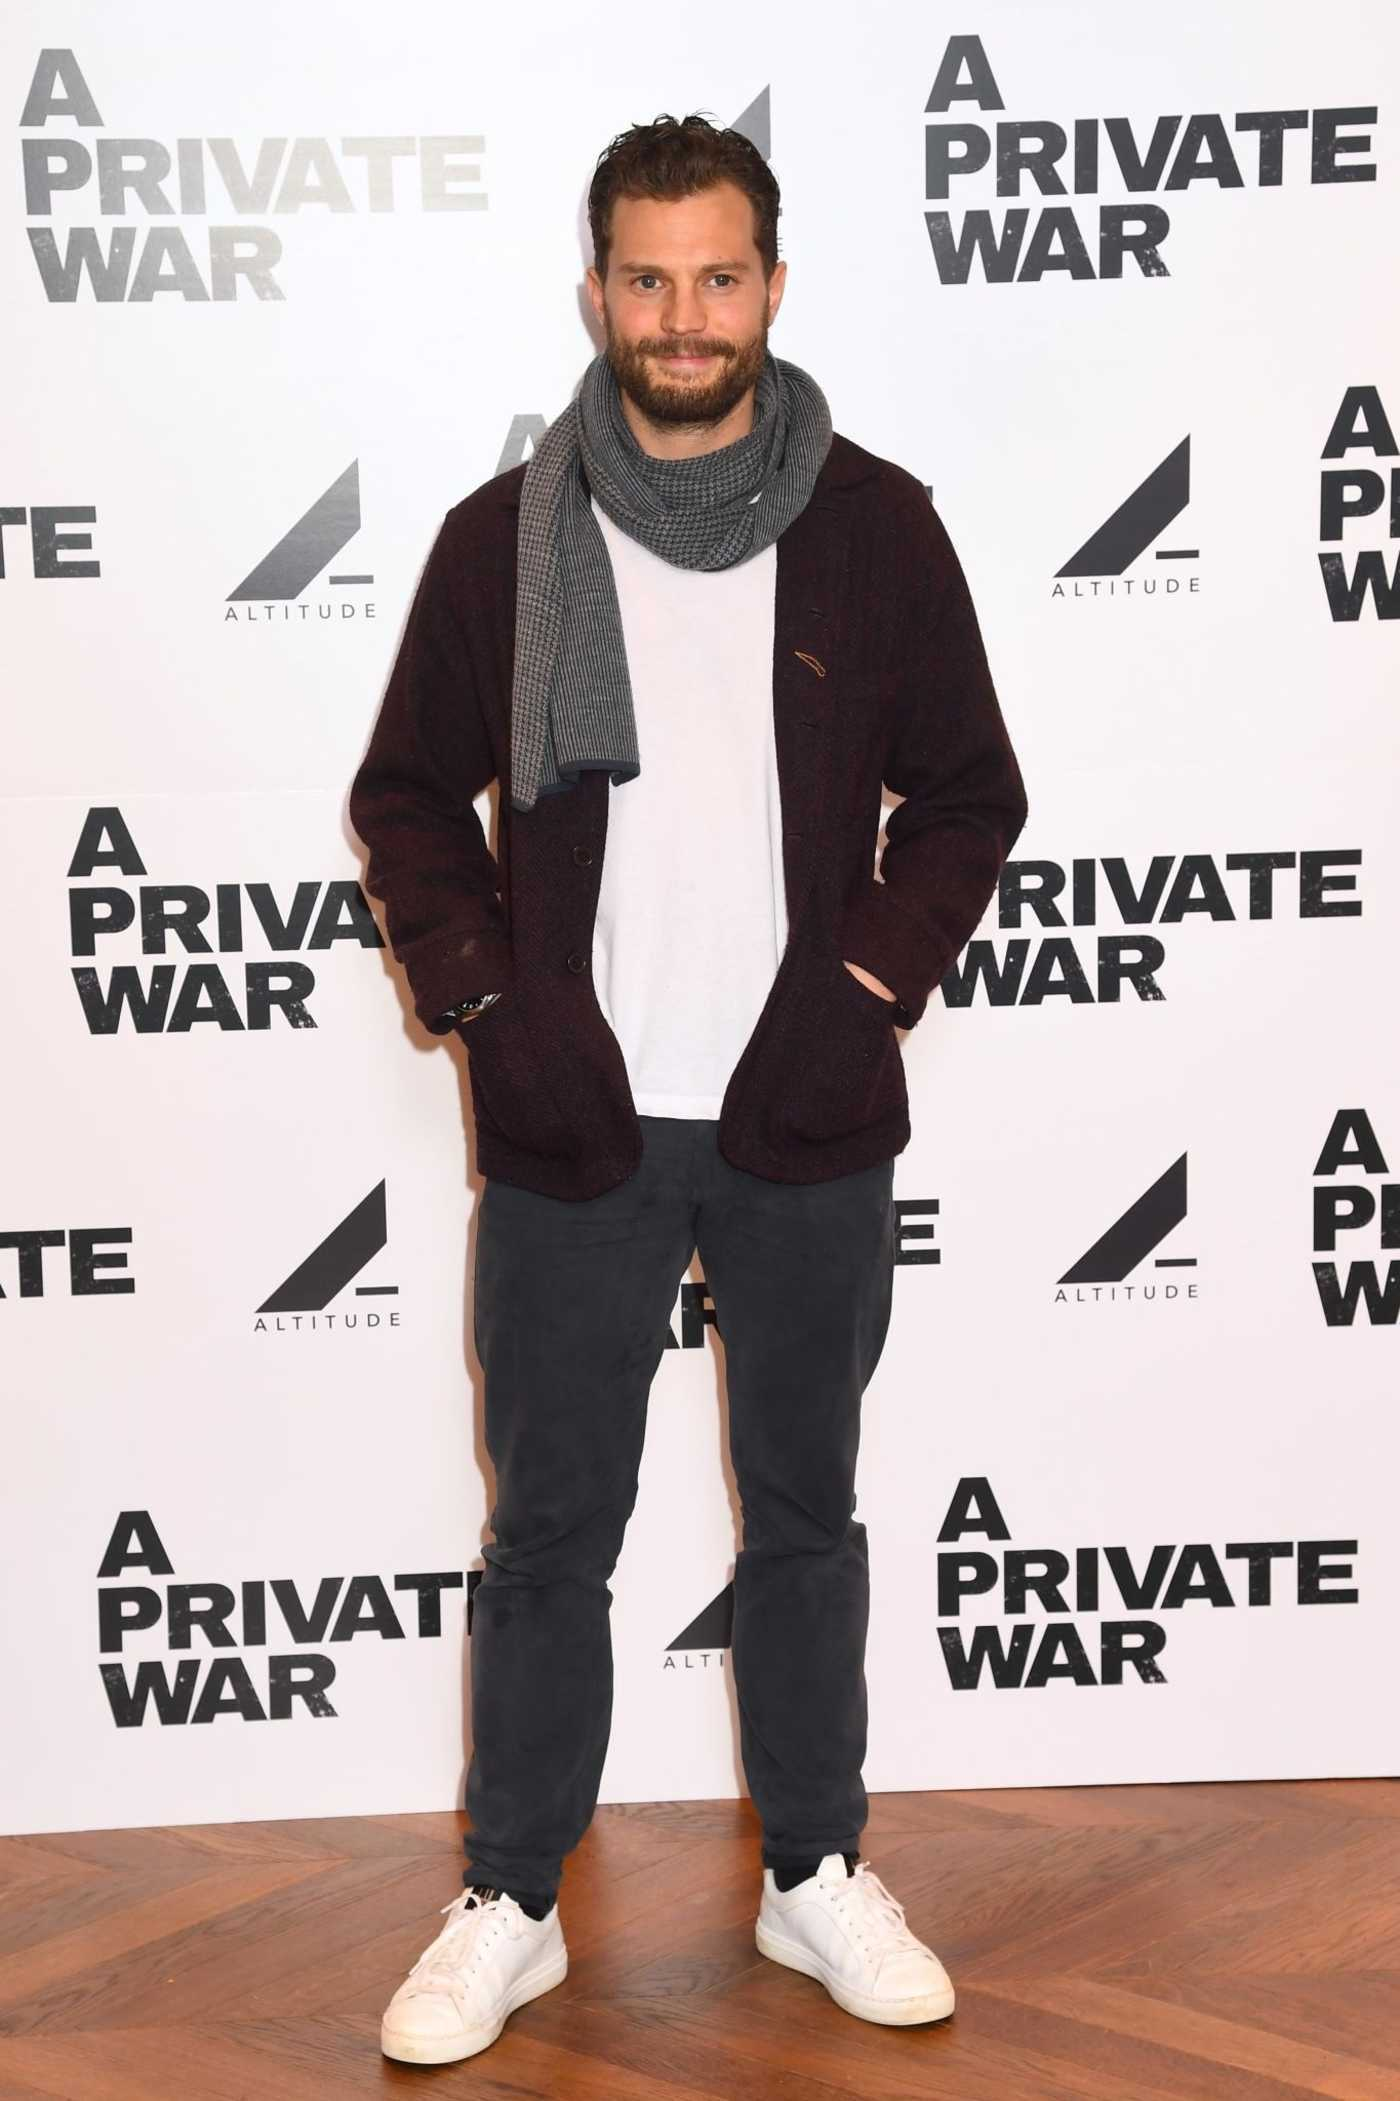 Jamie Dornan Attends a Private War Special Screening at Odeon Leicester Square in London 02/04/2019